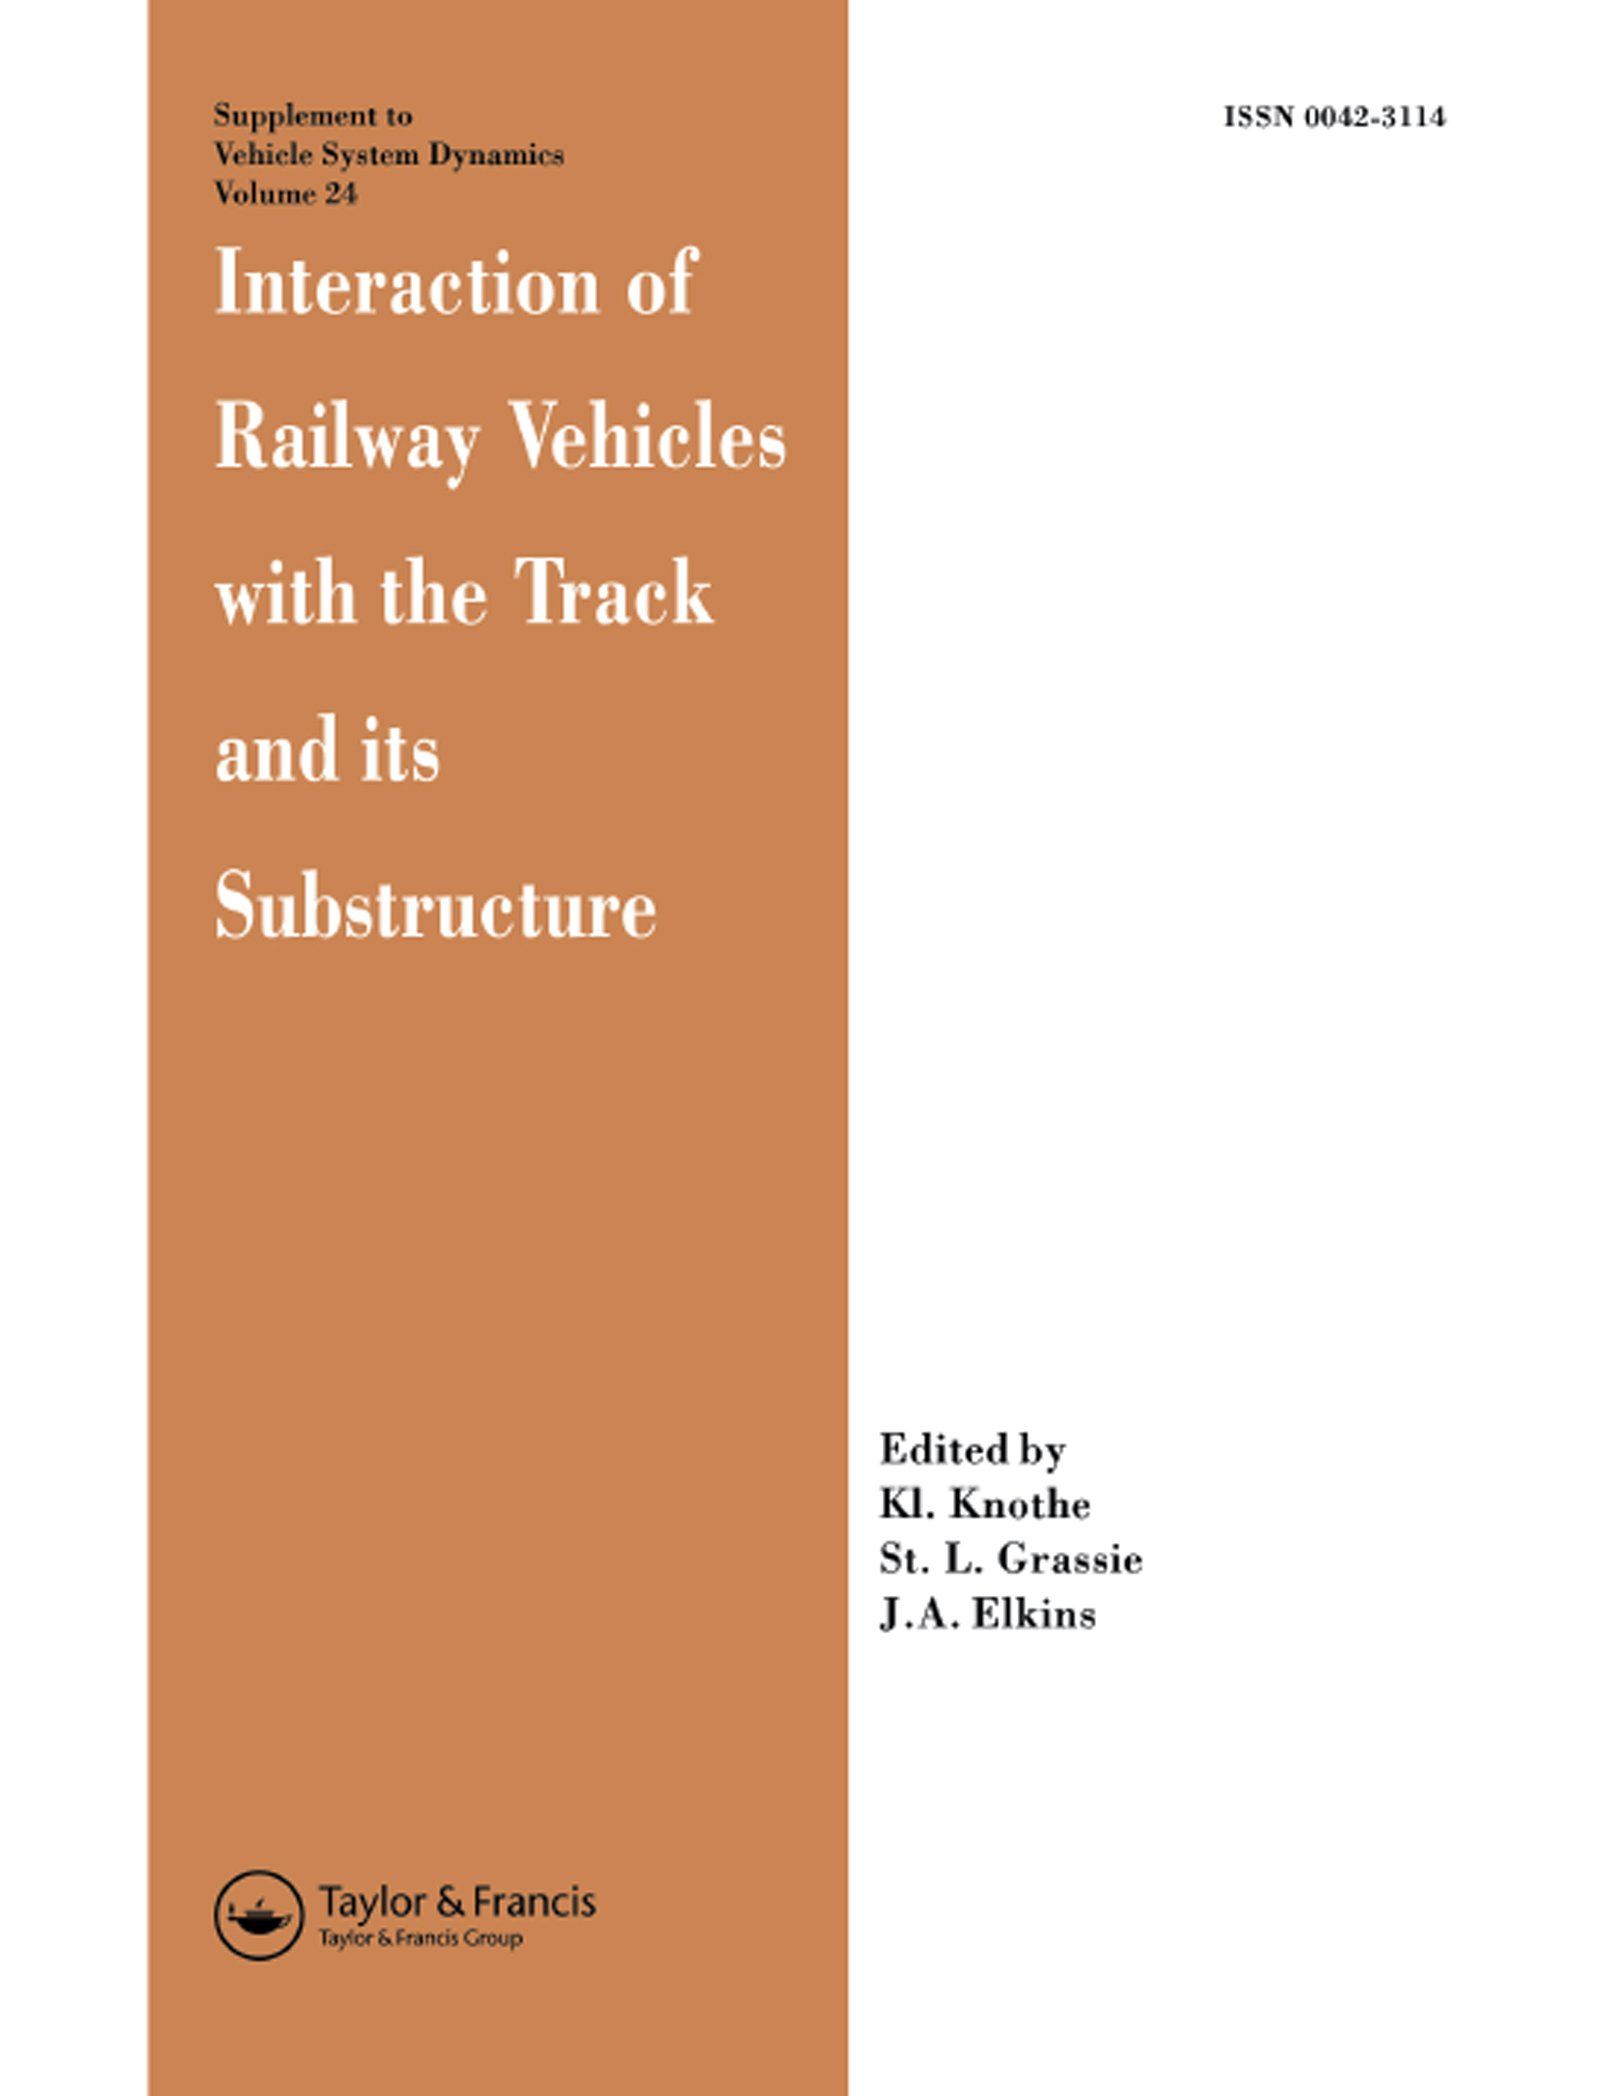 Interaction of Railway Vehicles with the Track and Its Substructure